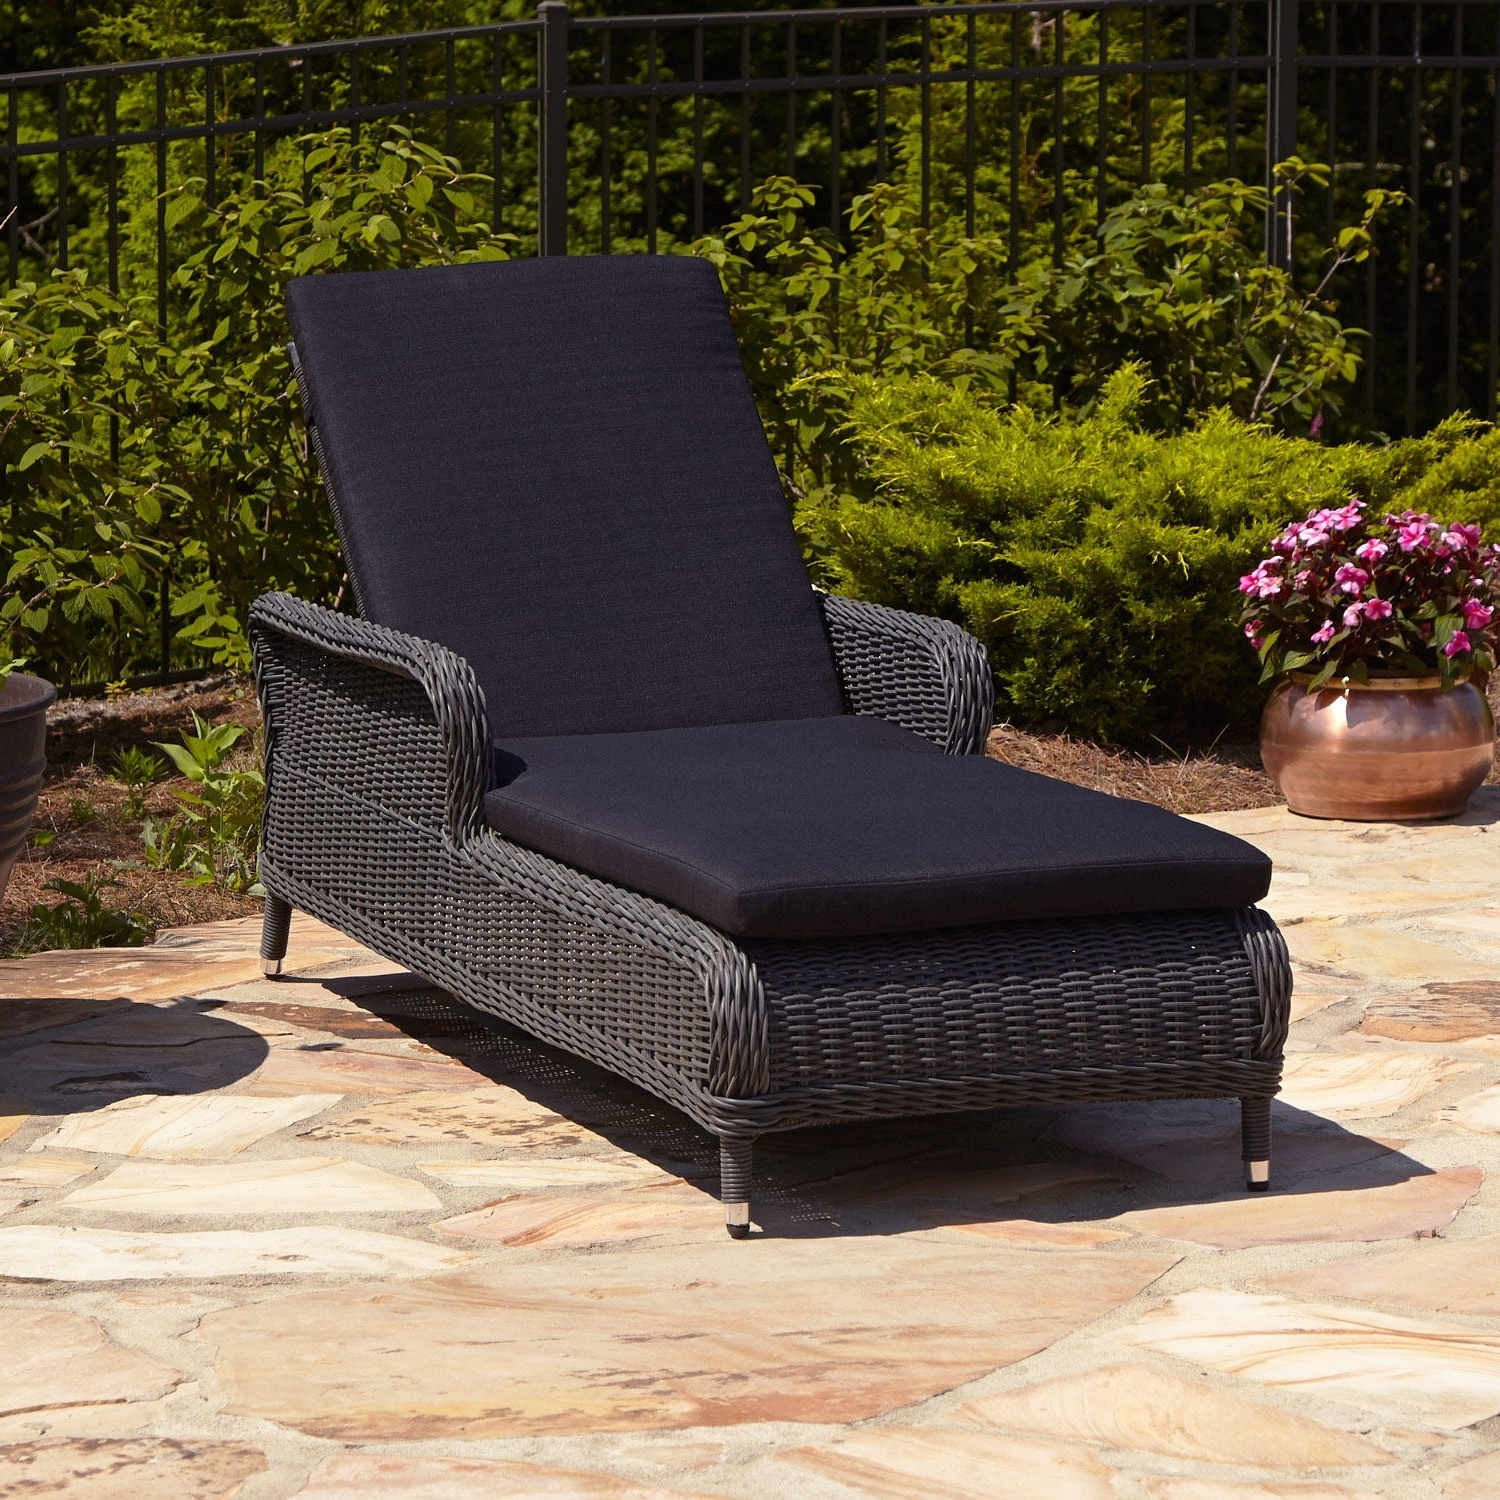 Pool Deck Chairs Top 15 Of Chaise Lounge Reclining Chairs For Outdoor